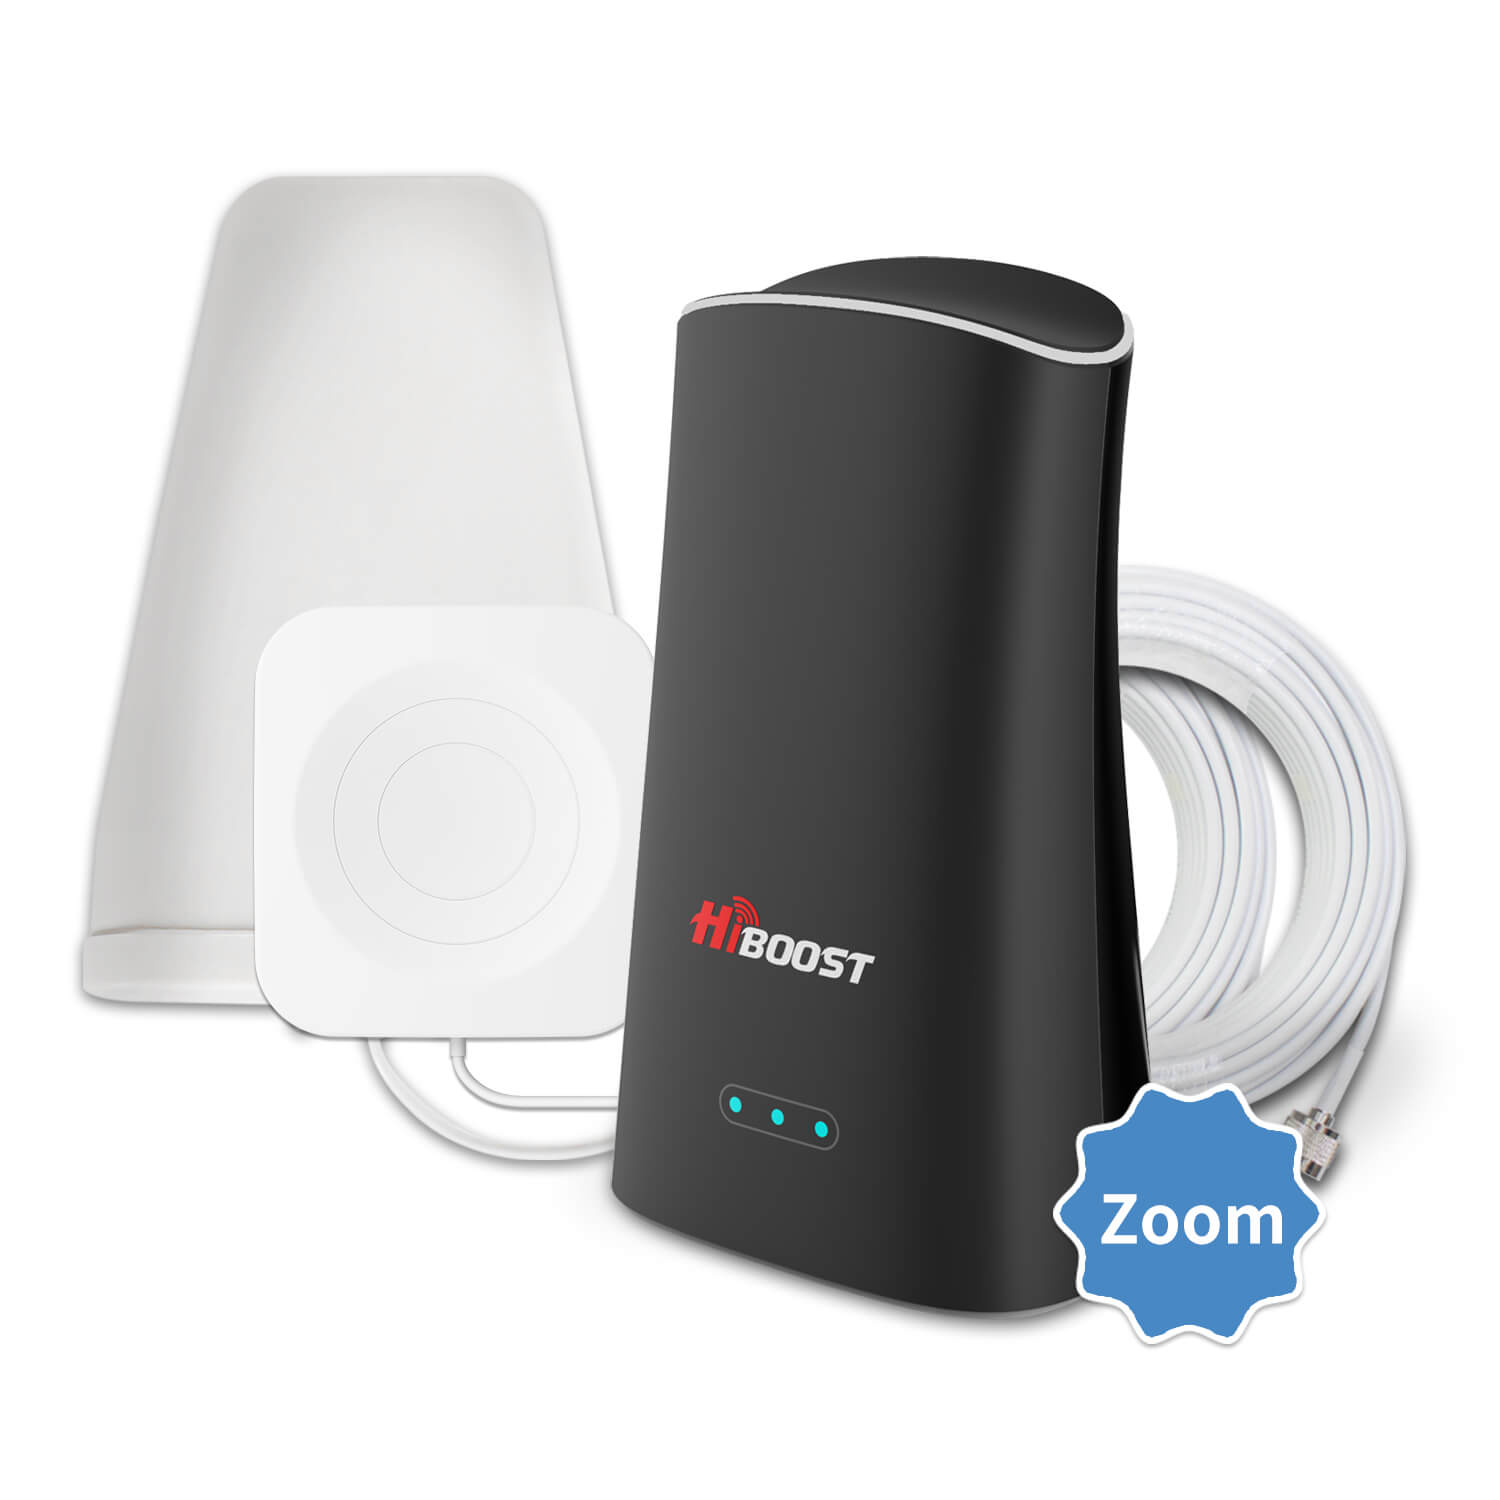 HiBoost-Zoom-cell-phone-signal-booster-1